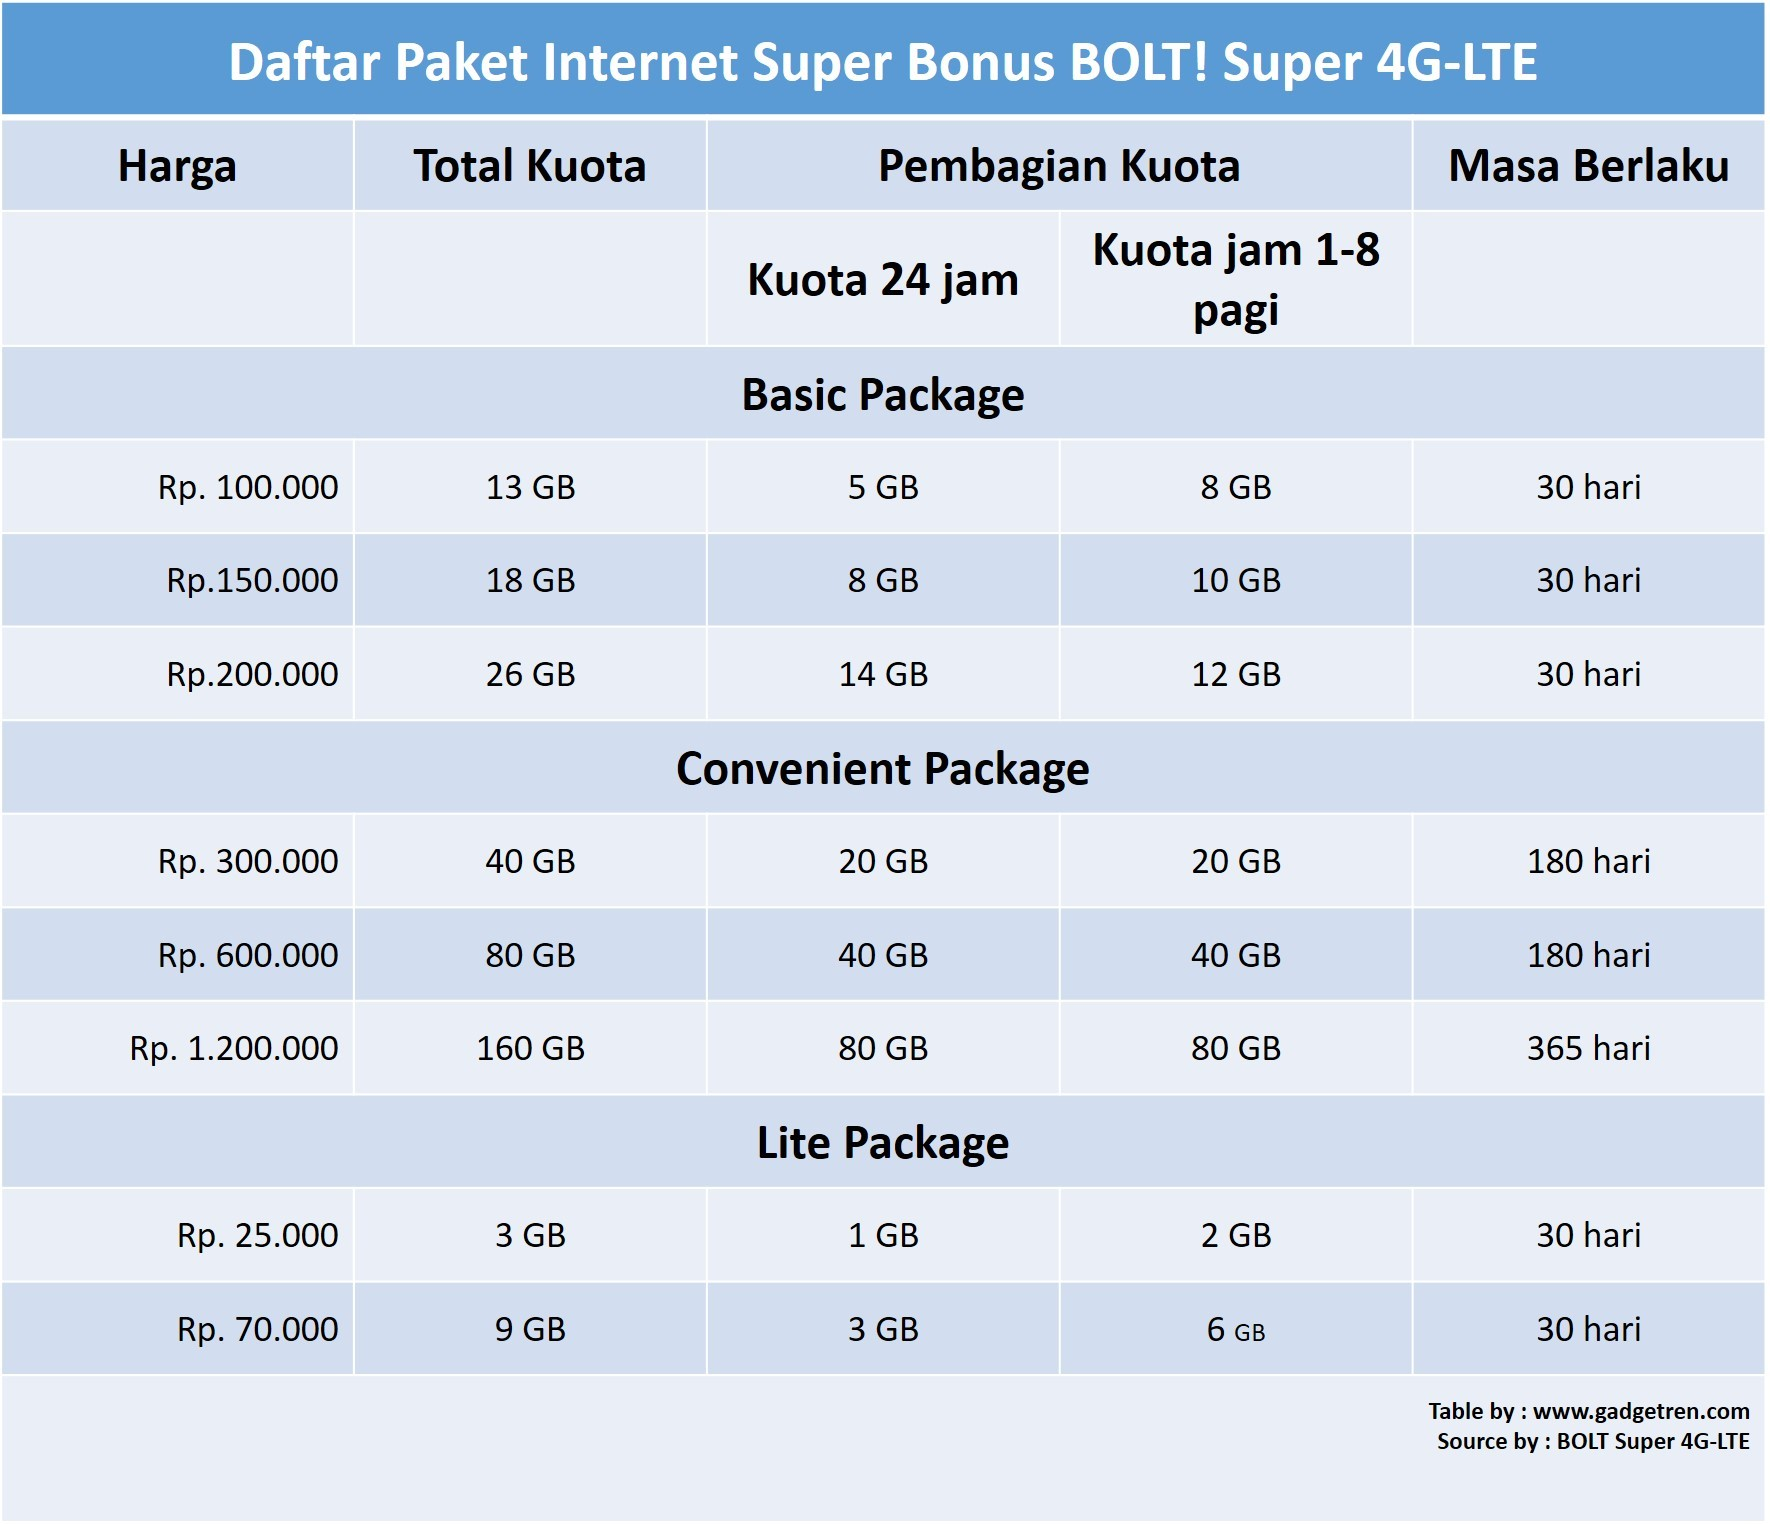 Paket Internet Super Bonus BOLT